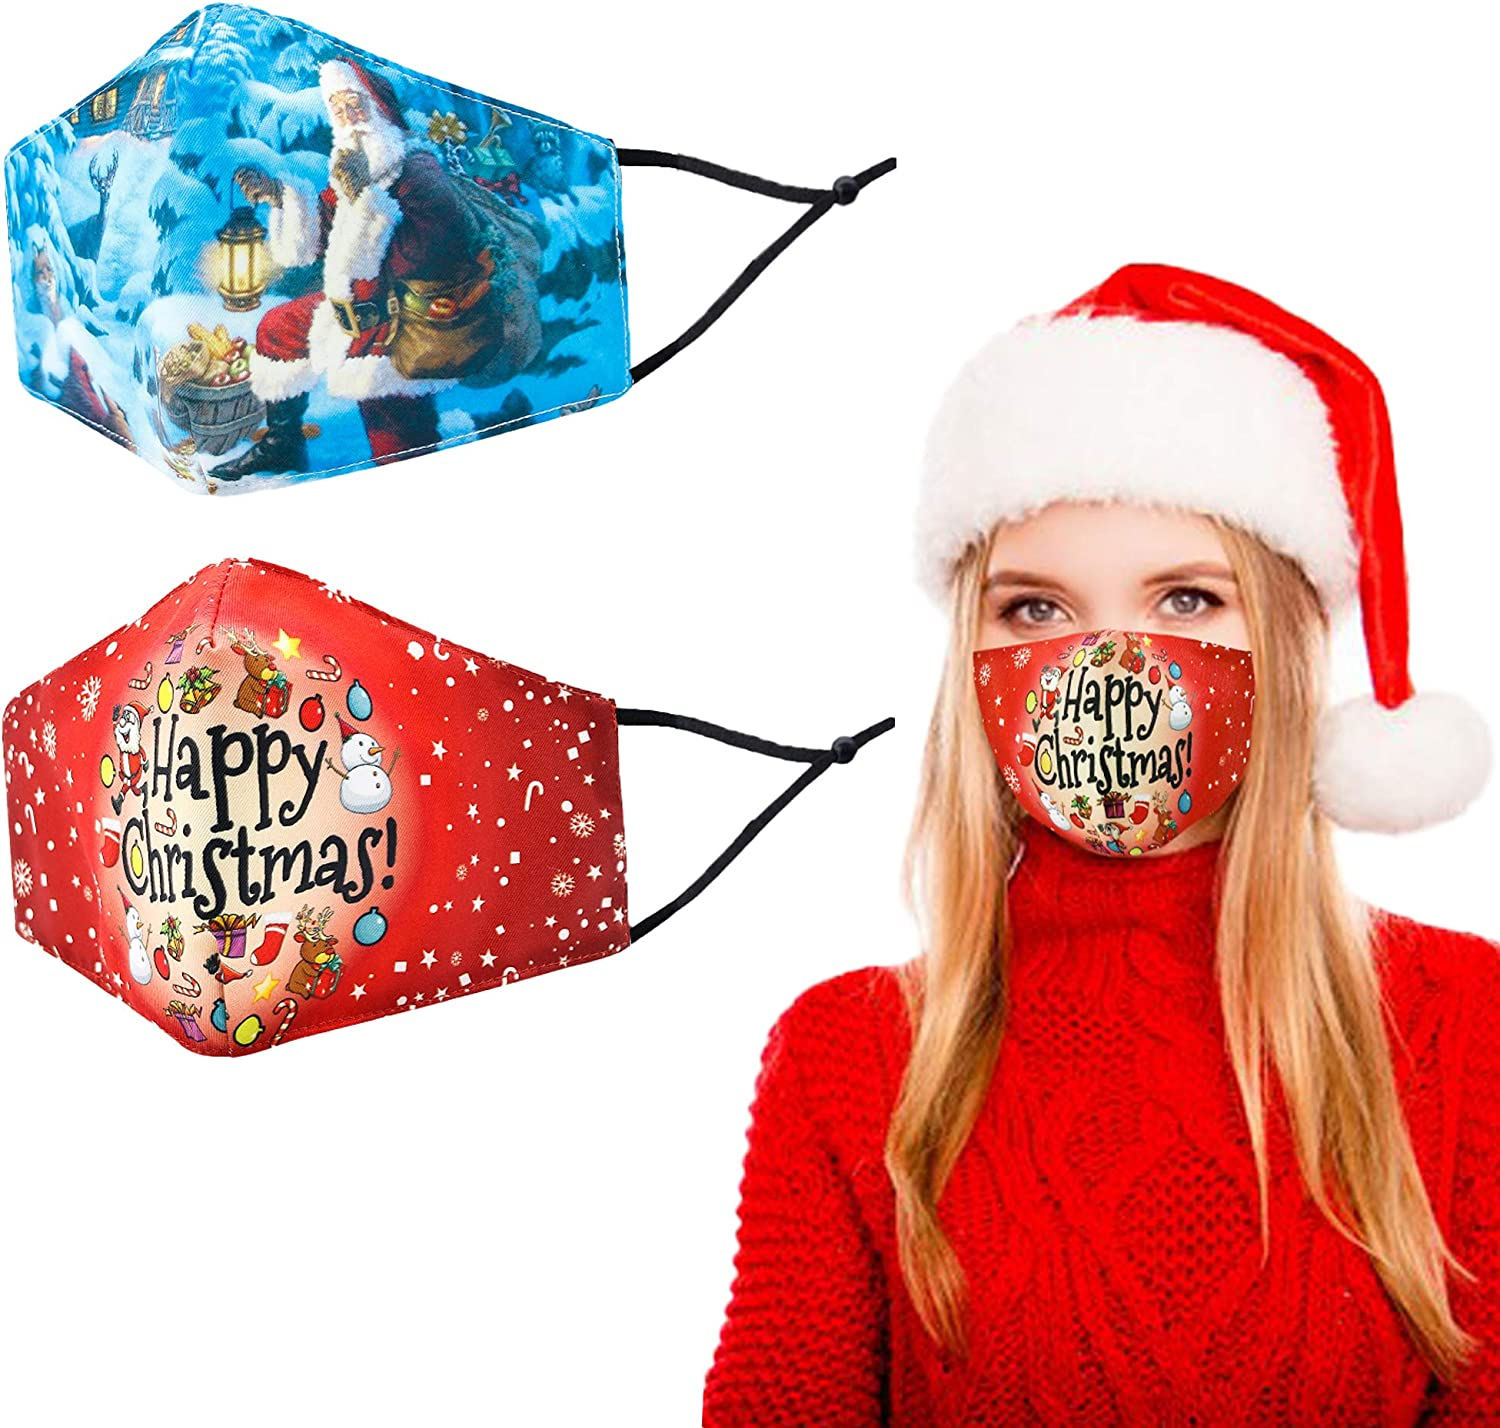 Christmas Reusable 3 Layers Cloth Mask, Washable Cotton Face Cover with Adjustable Elastic Ear Loops